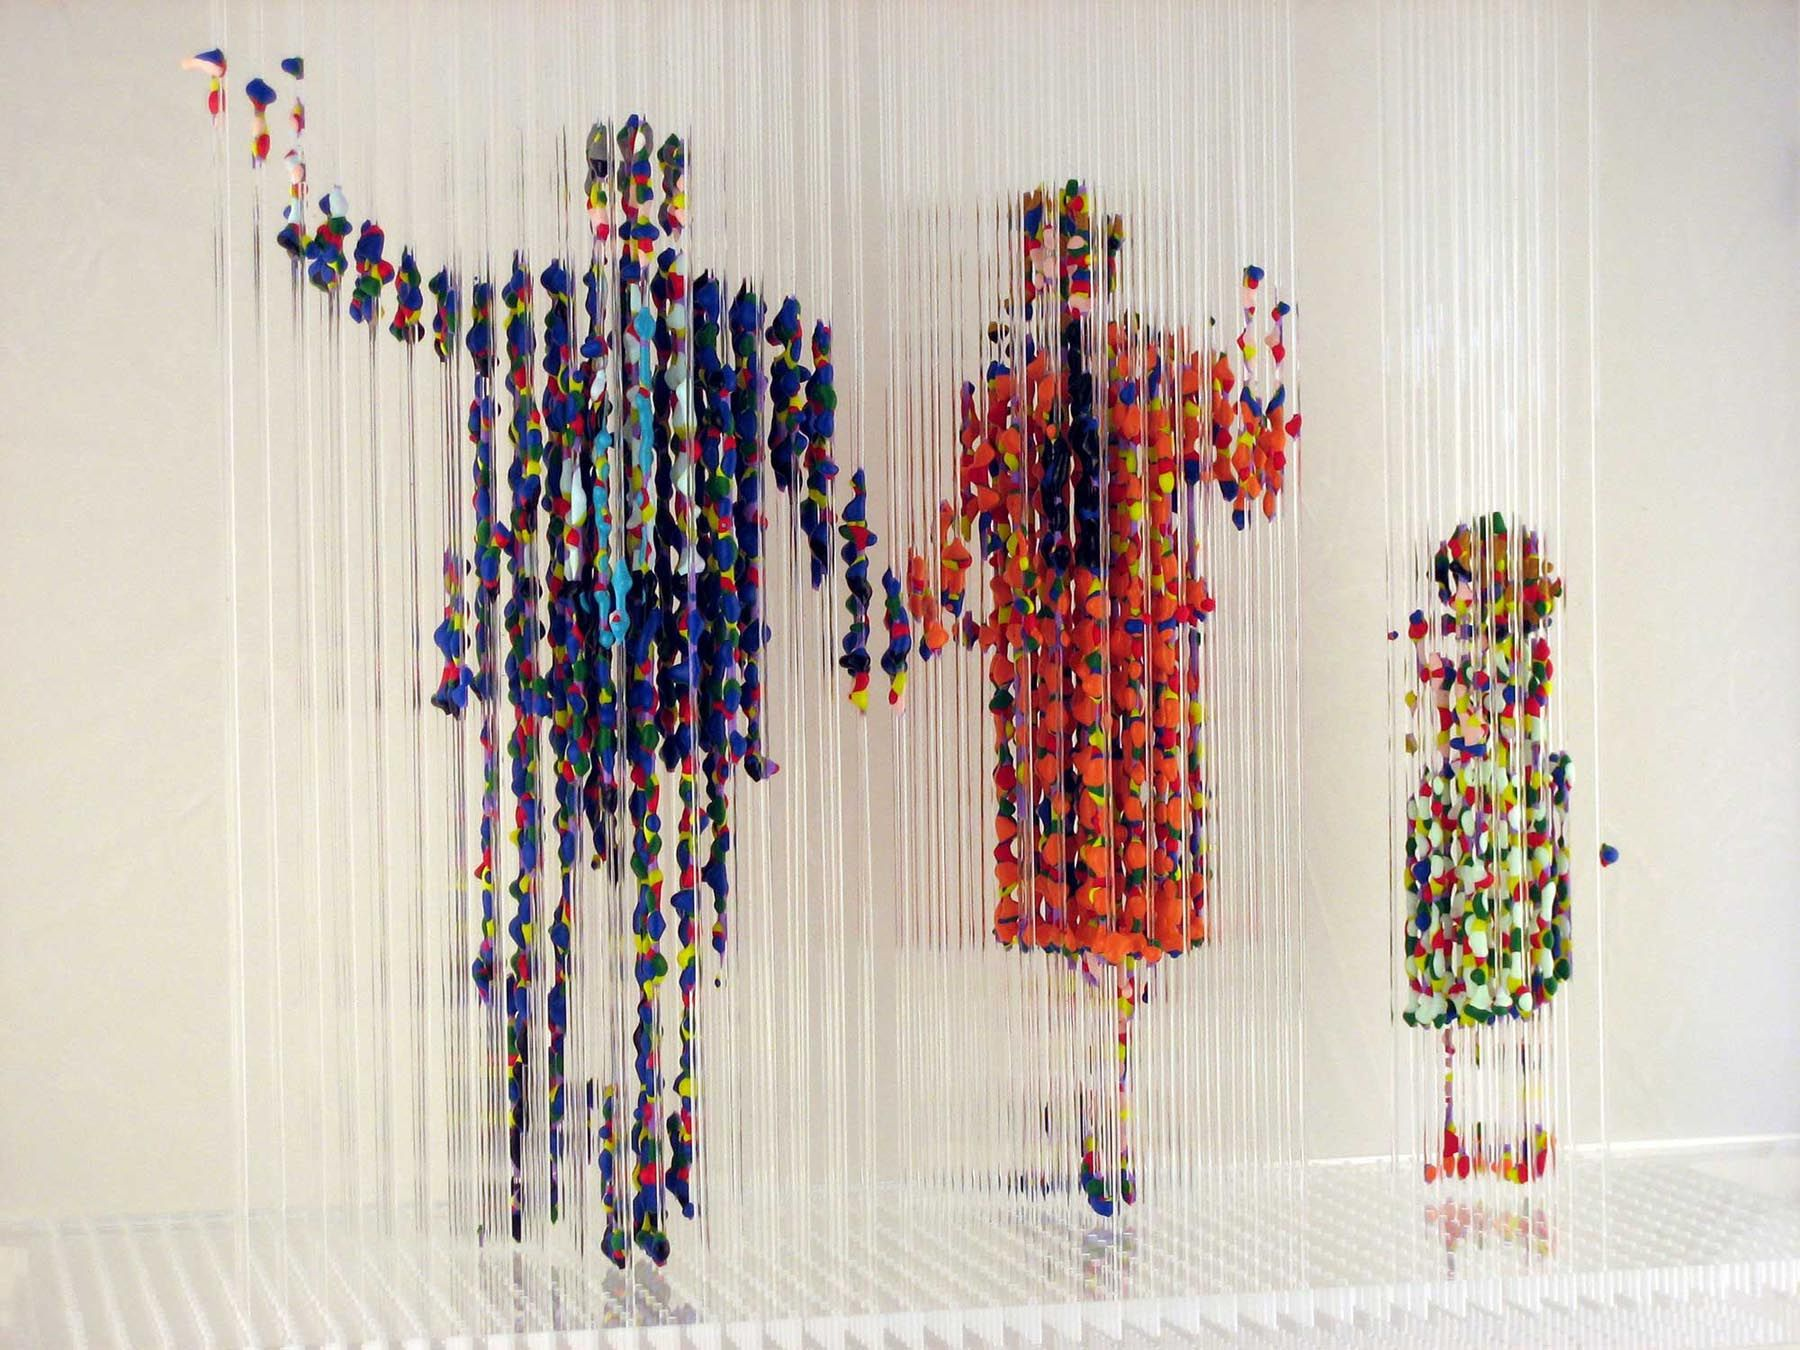 Chris dorosz made of monofilament and paint